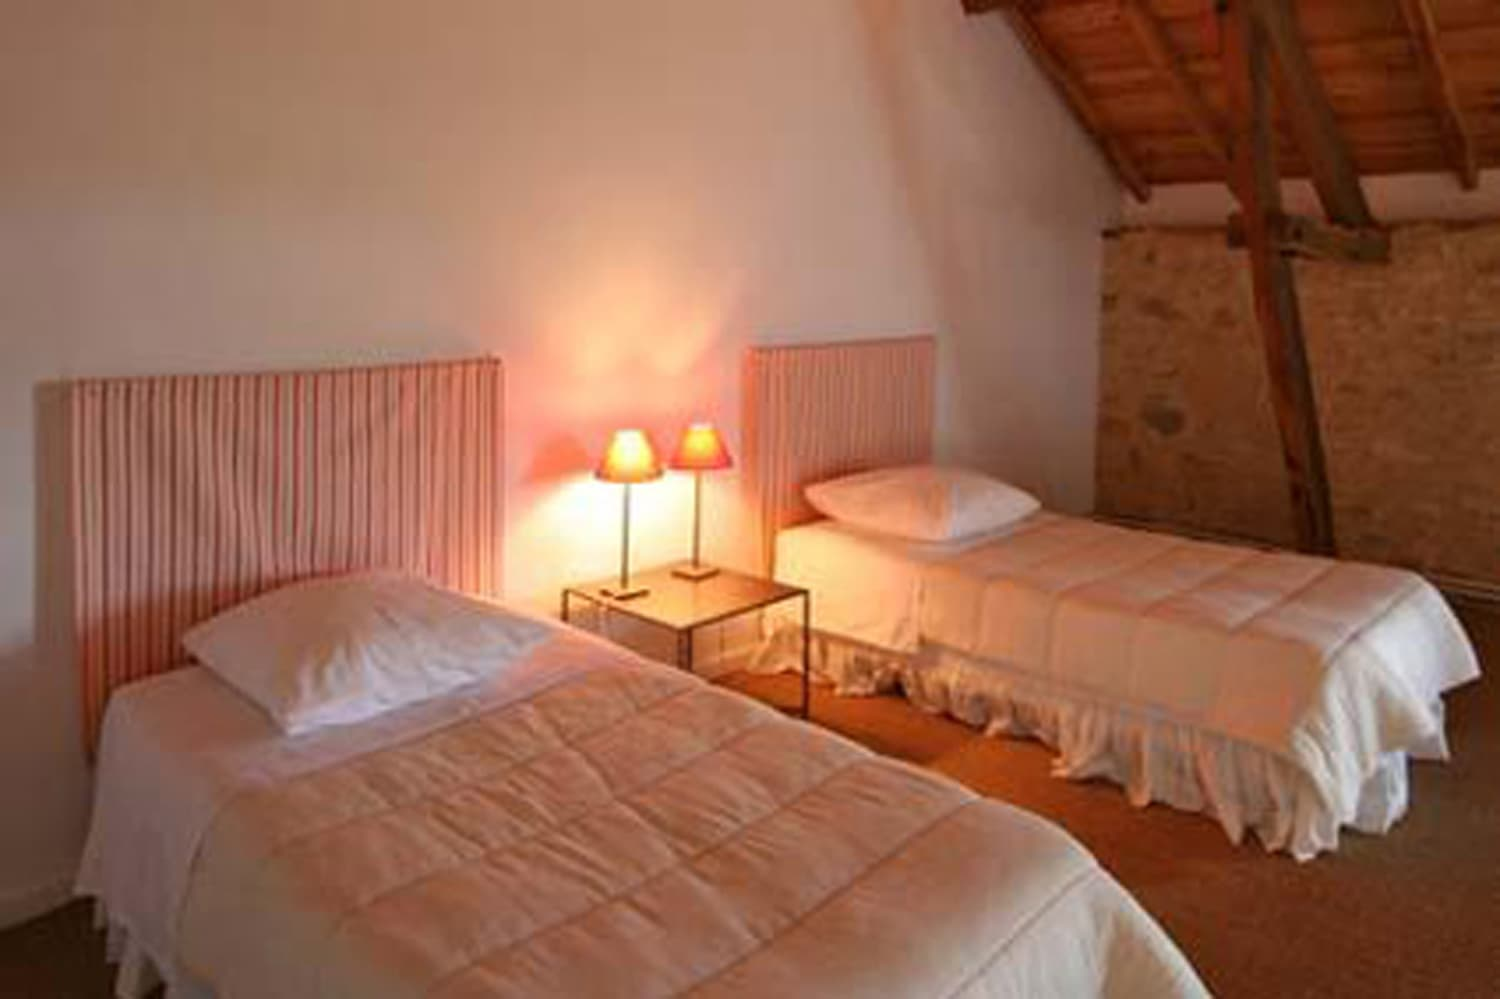 Bedroom in Dordogne self-catering accommodation